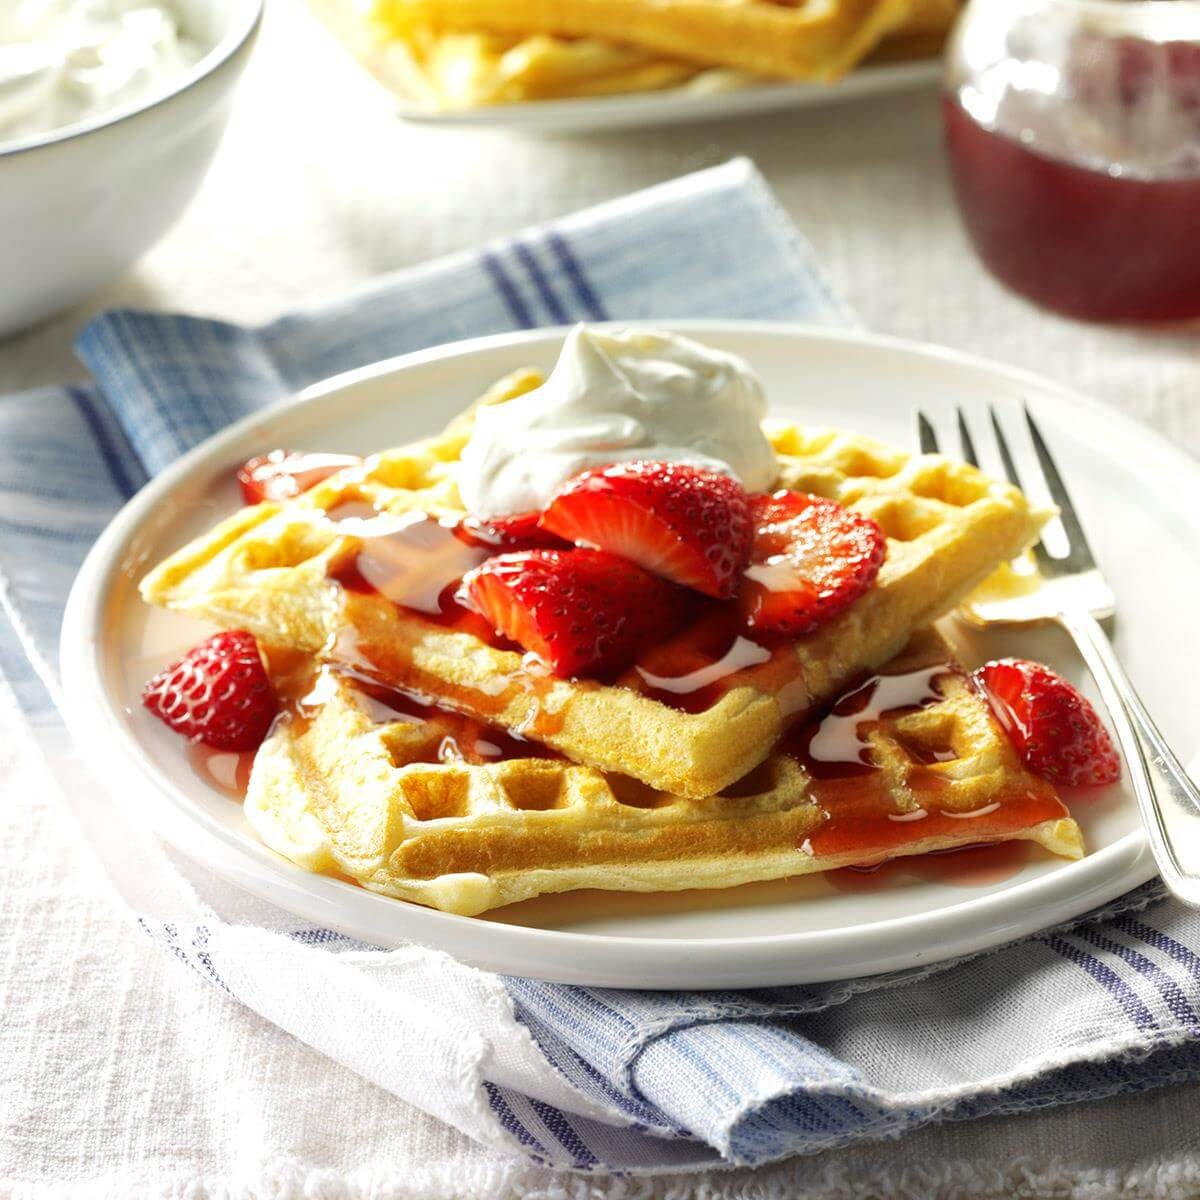 25 Tasty Strawberry Breakfast Recipes To Start Your Day Off Right